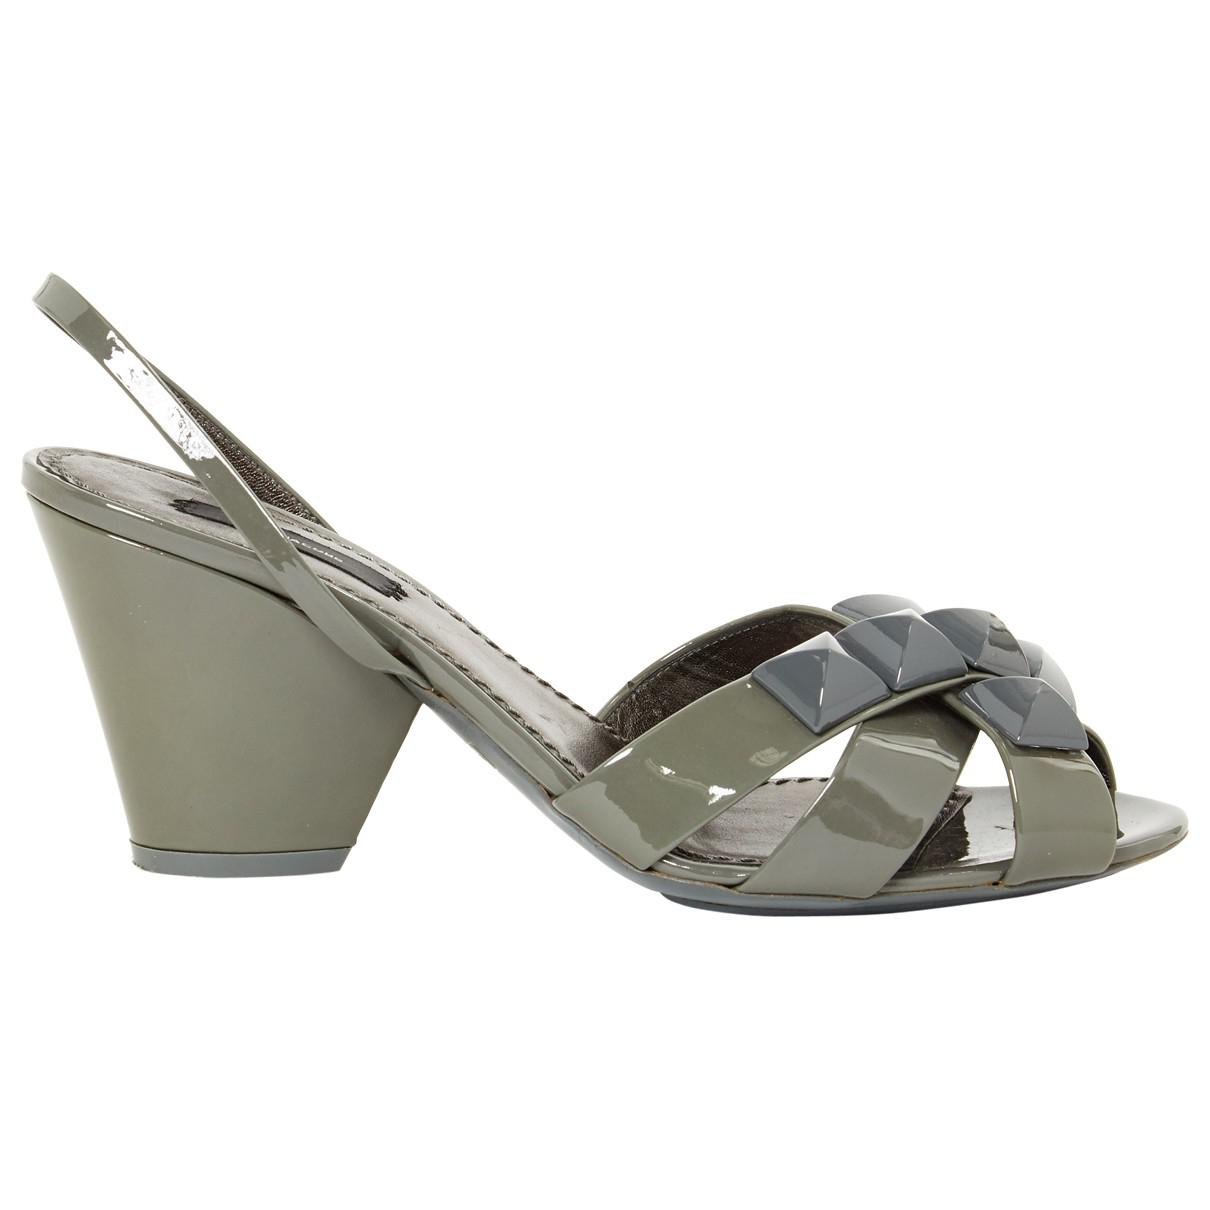 Pre-owned - LEATHER SANDALS Marc Jacobs TEtPhKC